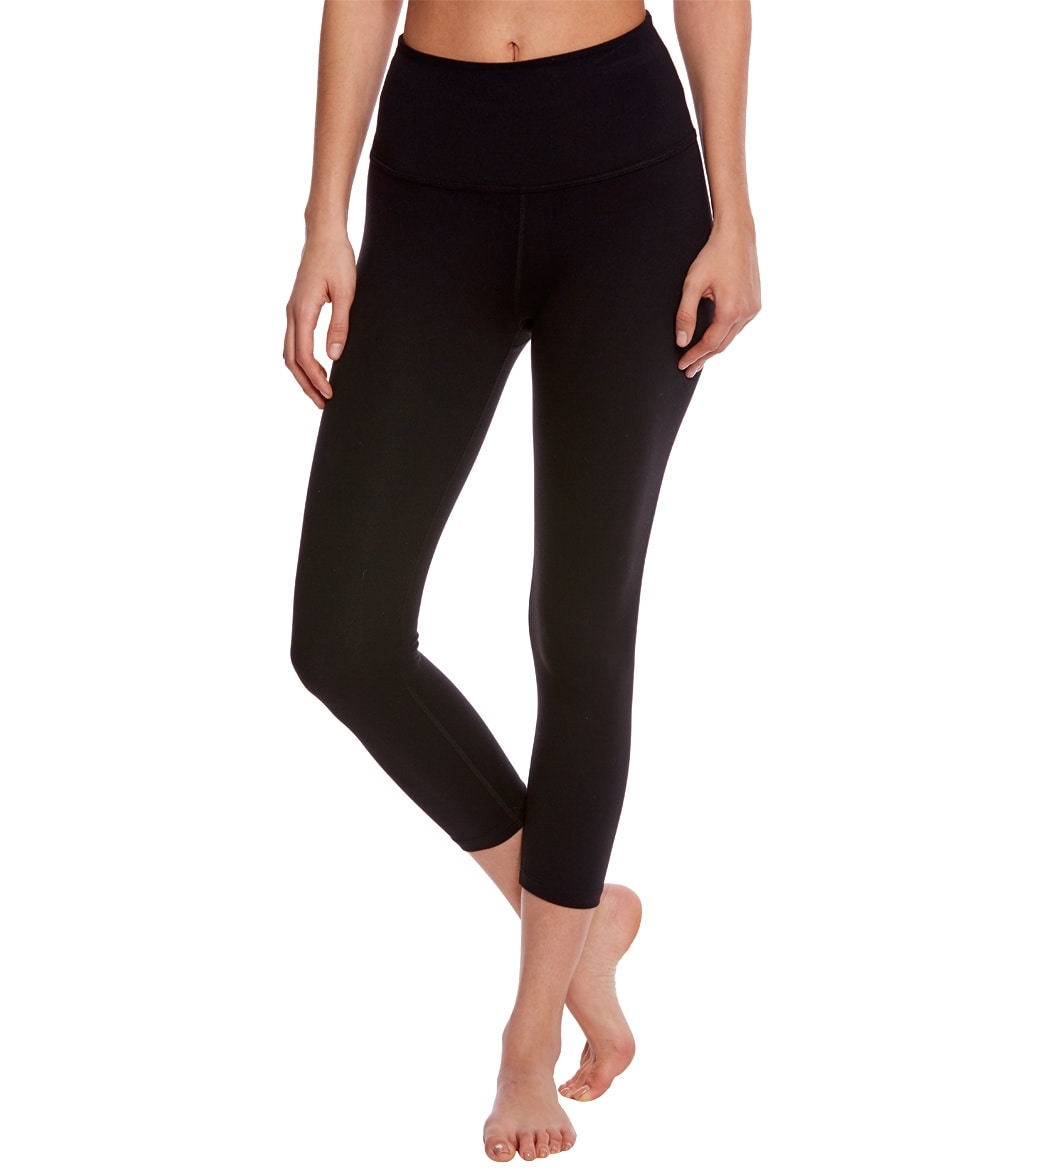 Beyond Yoga High Waist Yoga Capris at YogaOutlet.com - Free Shipping